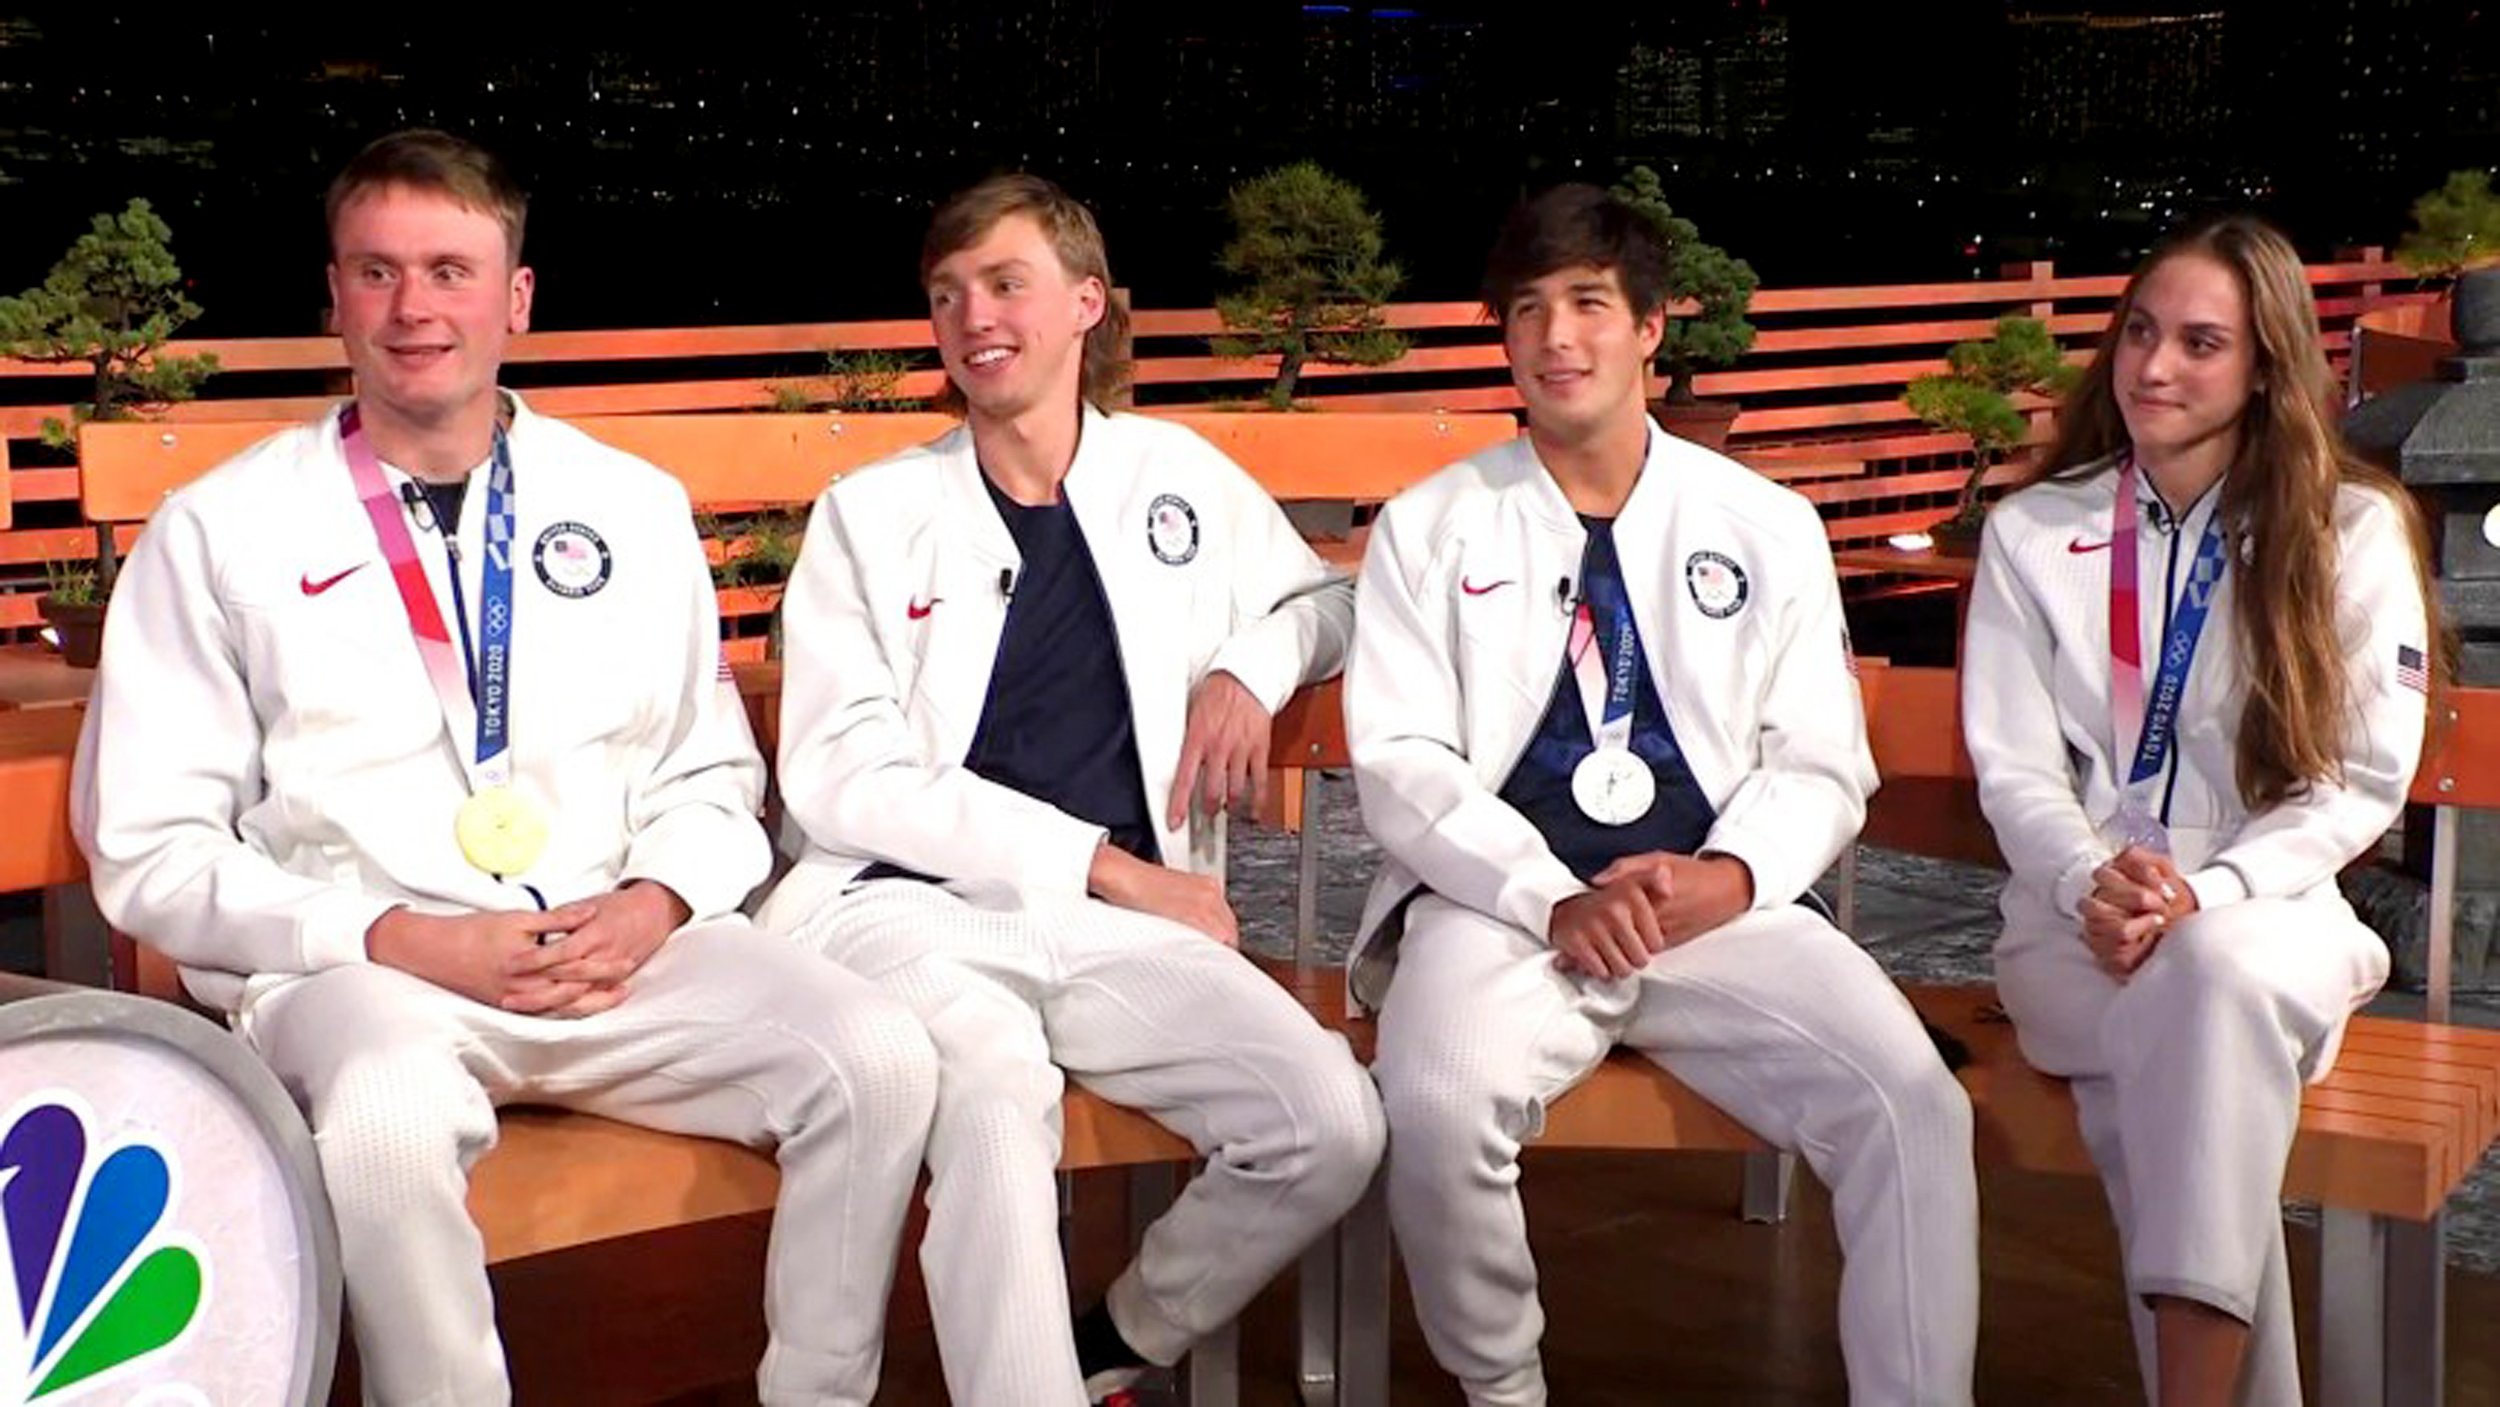 Meet the new generation of Team USA swimmers, who took home six medals on opening night